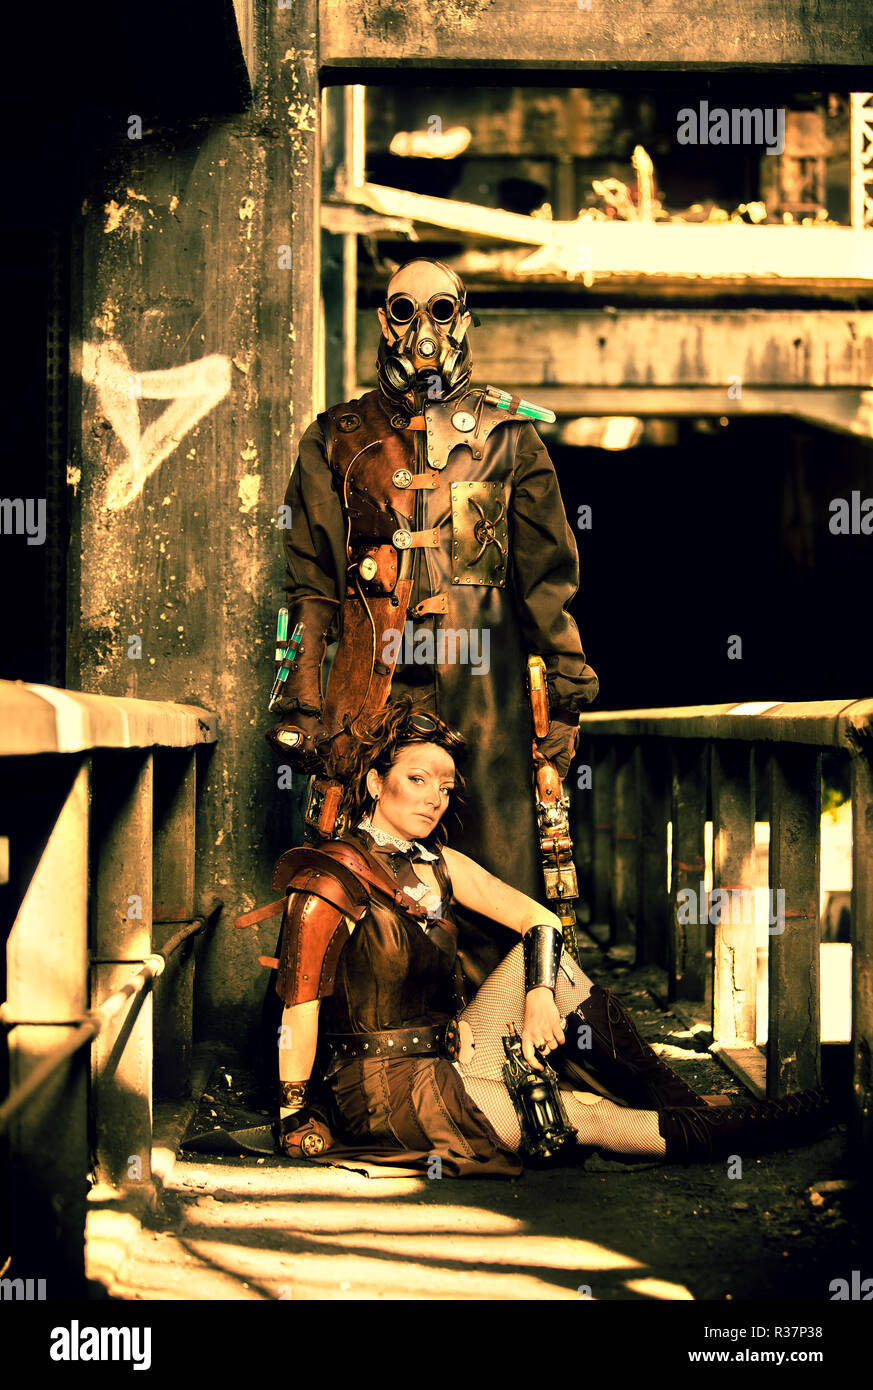 Steampunk couple in an apocaplytic scene - Stock Image